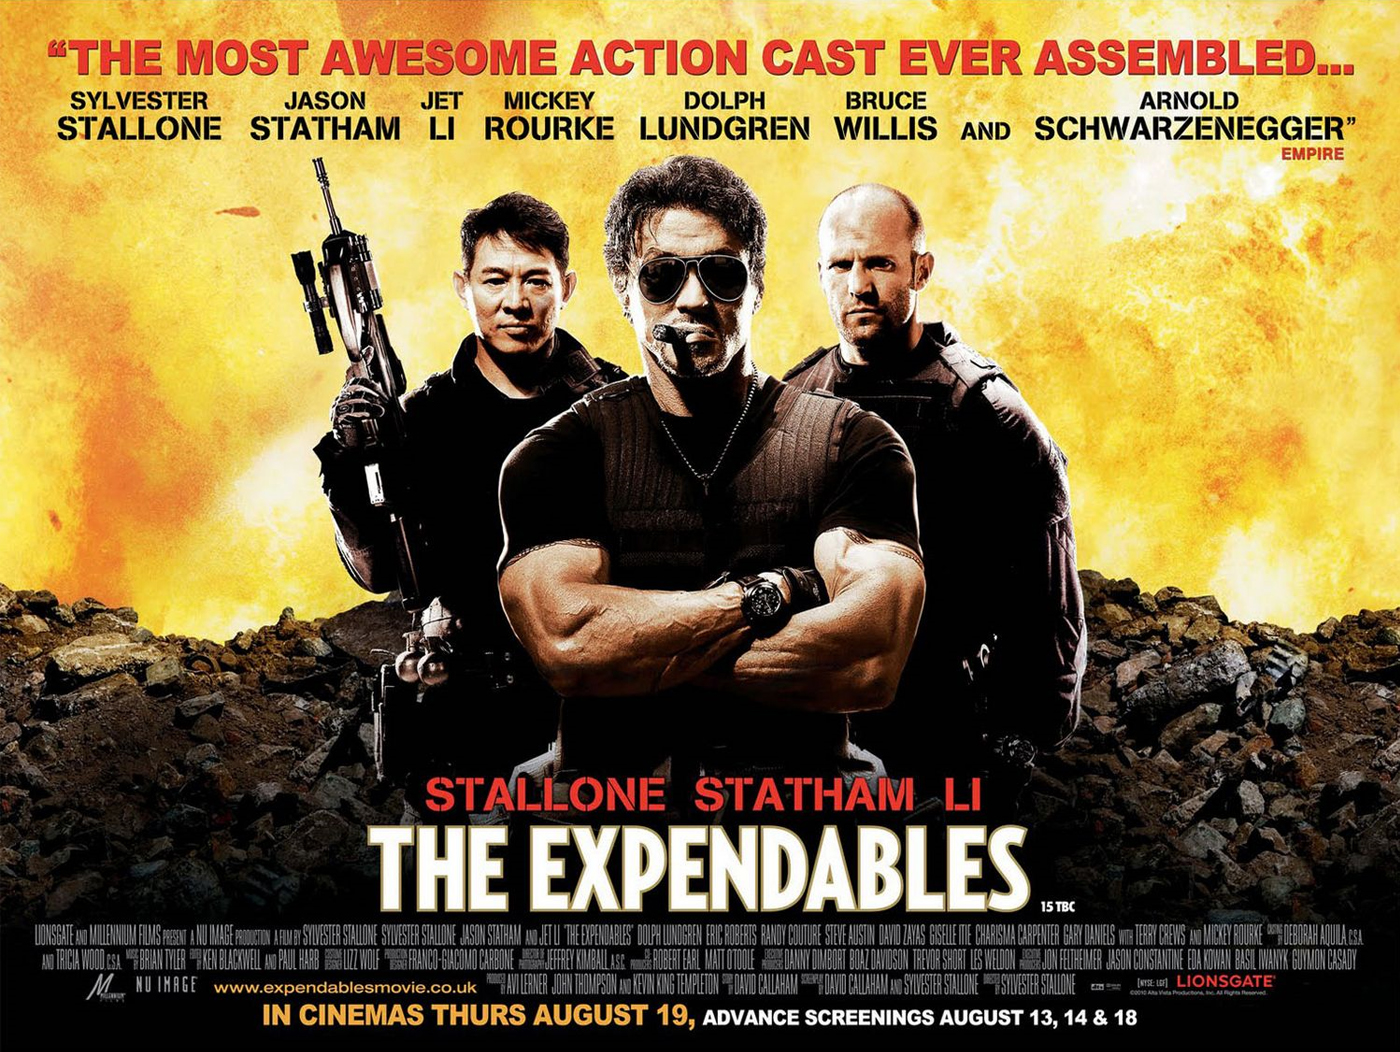 The Expendables VFX